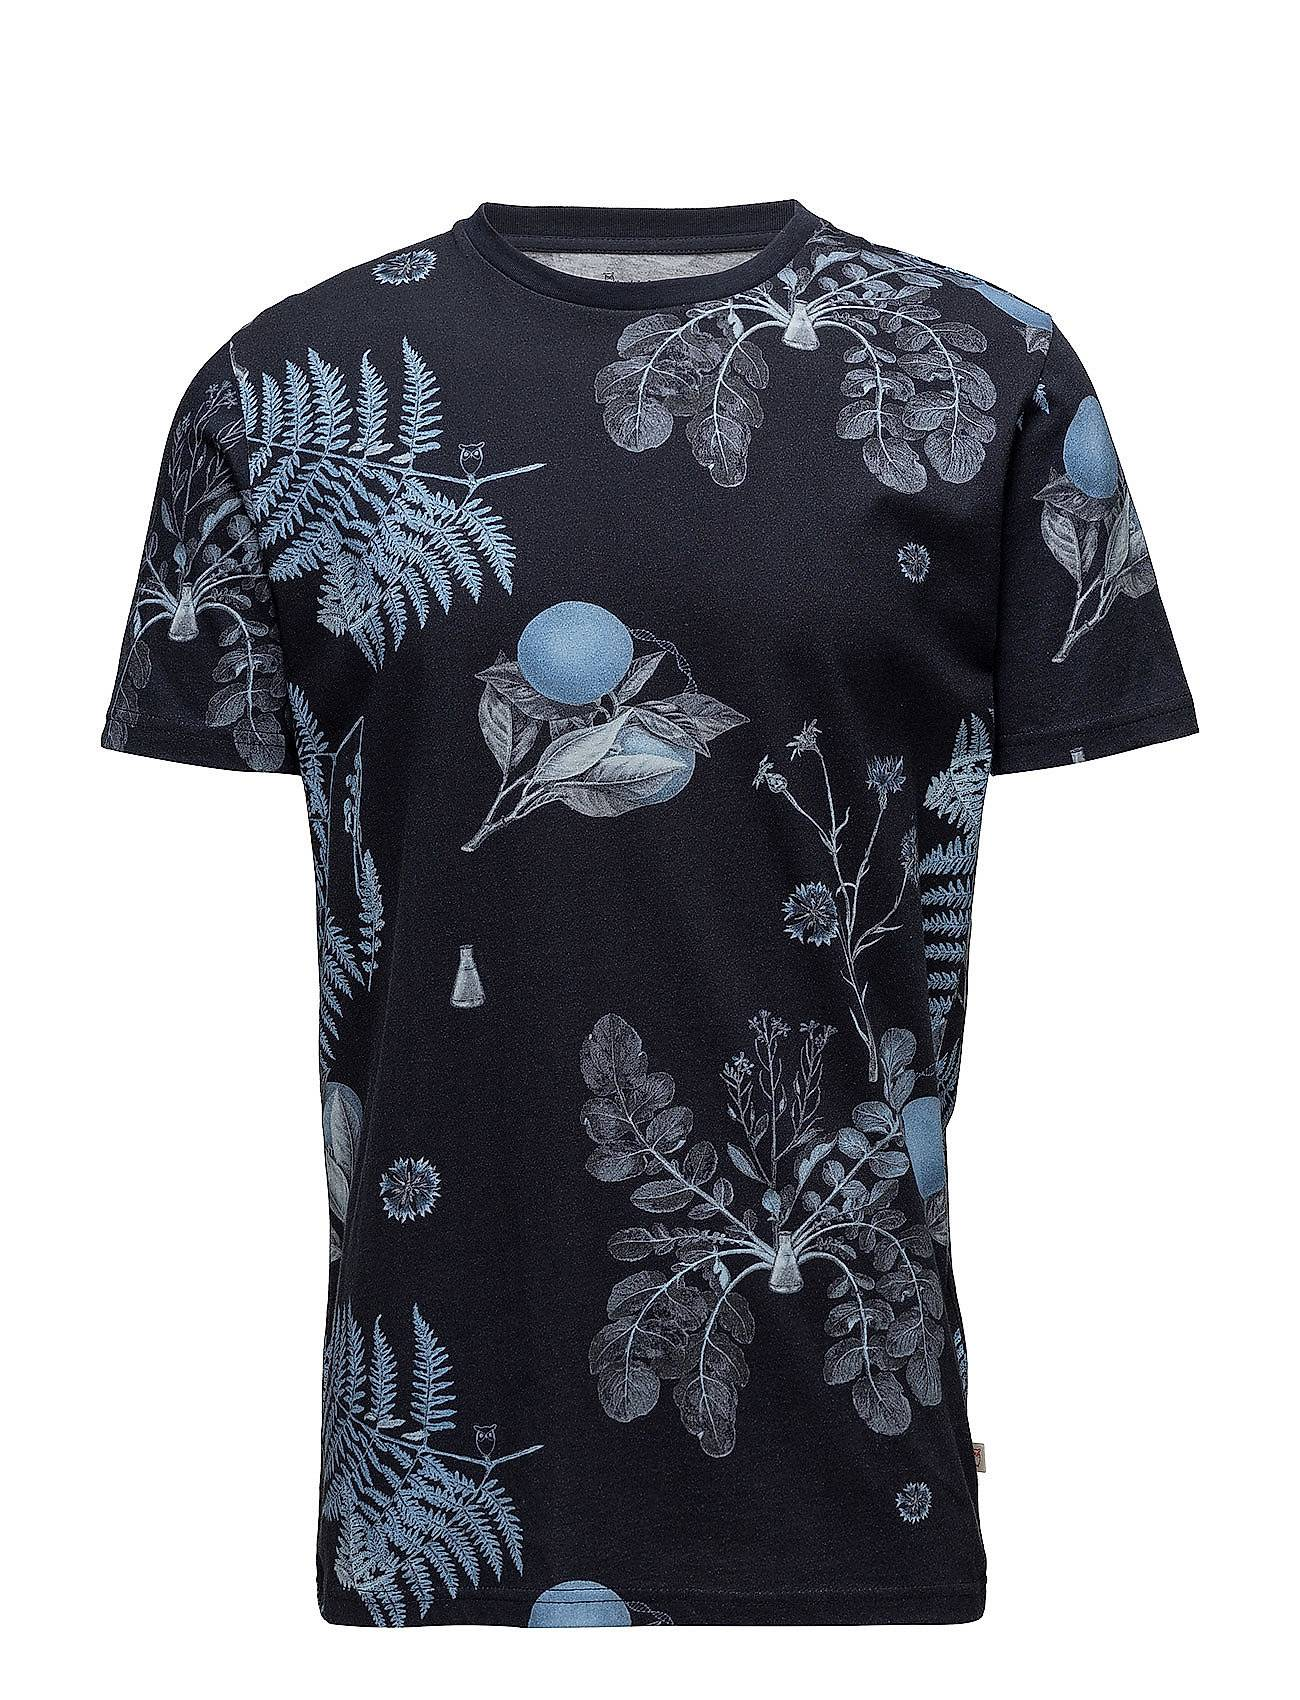 Knowledge Cotton Apparel T-Shirt With All Over Print - Gots